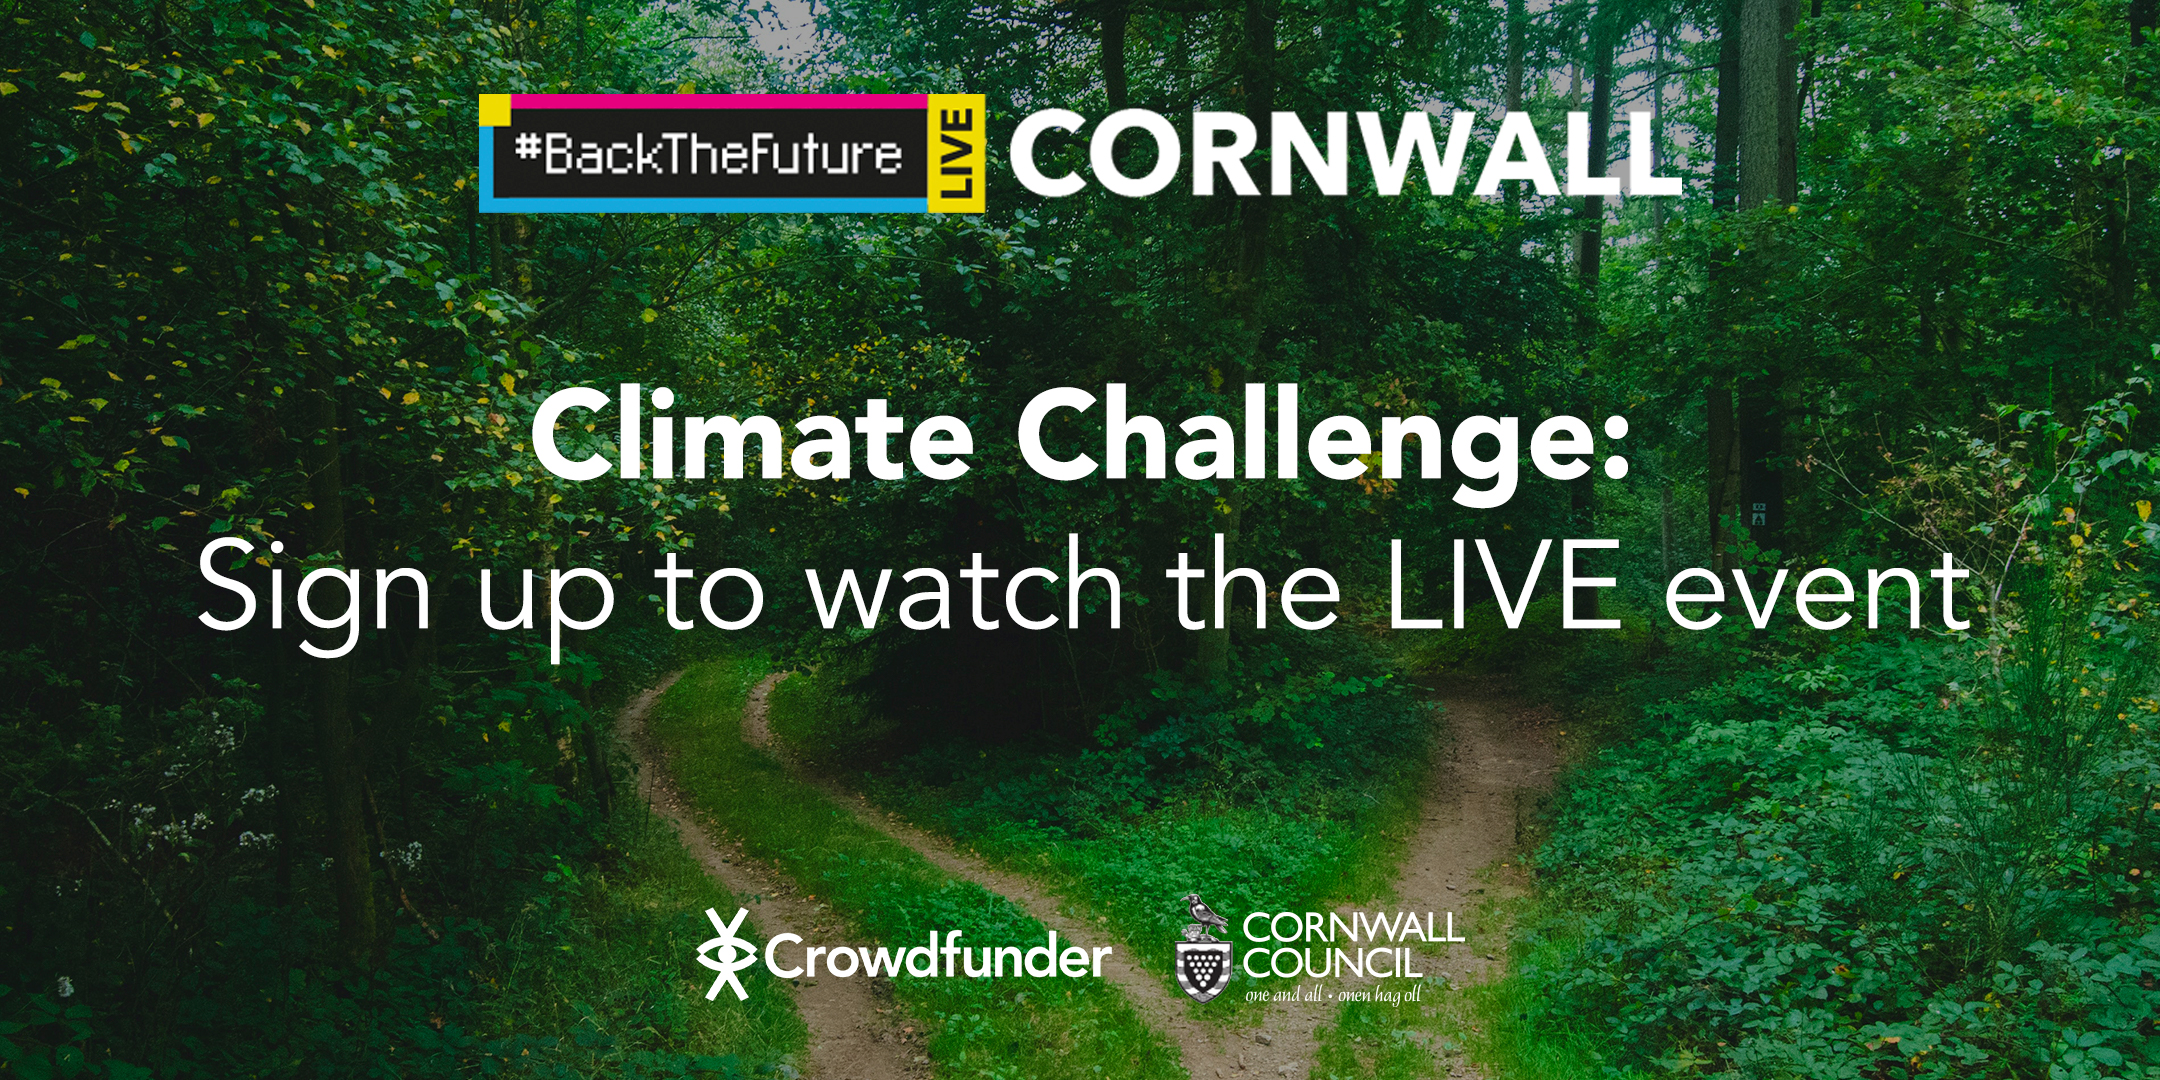 Cornwall Council and Crowdfunder team up to tackle climate change with #BackTheFuture LIVE